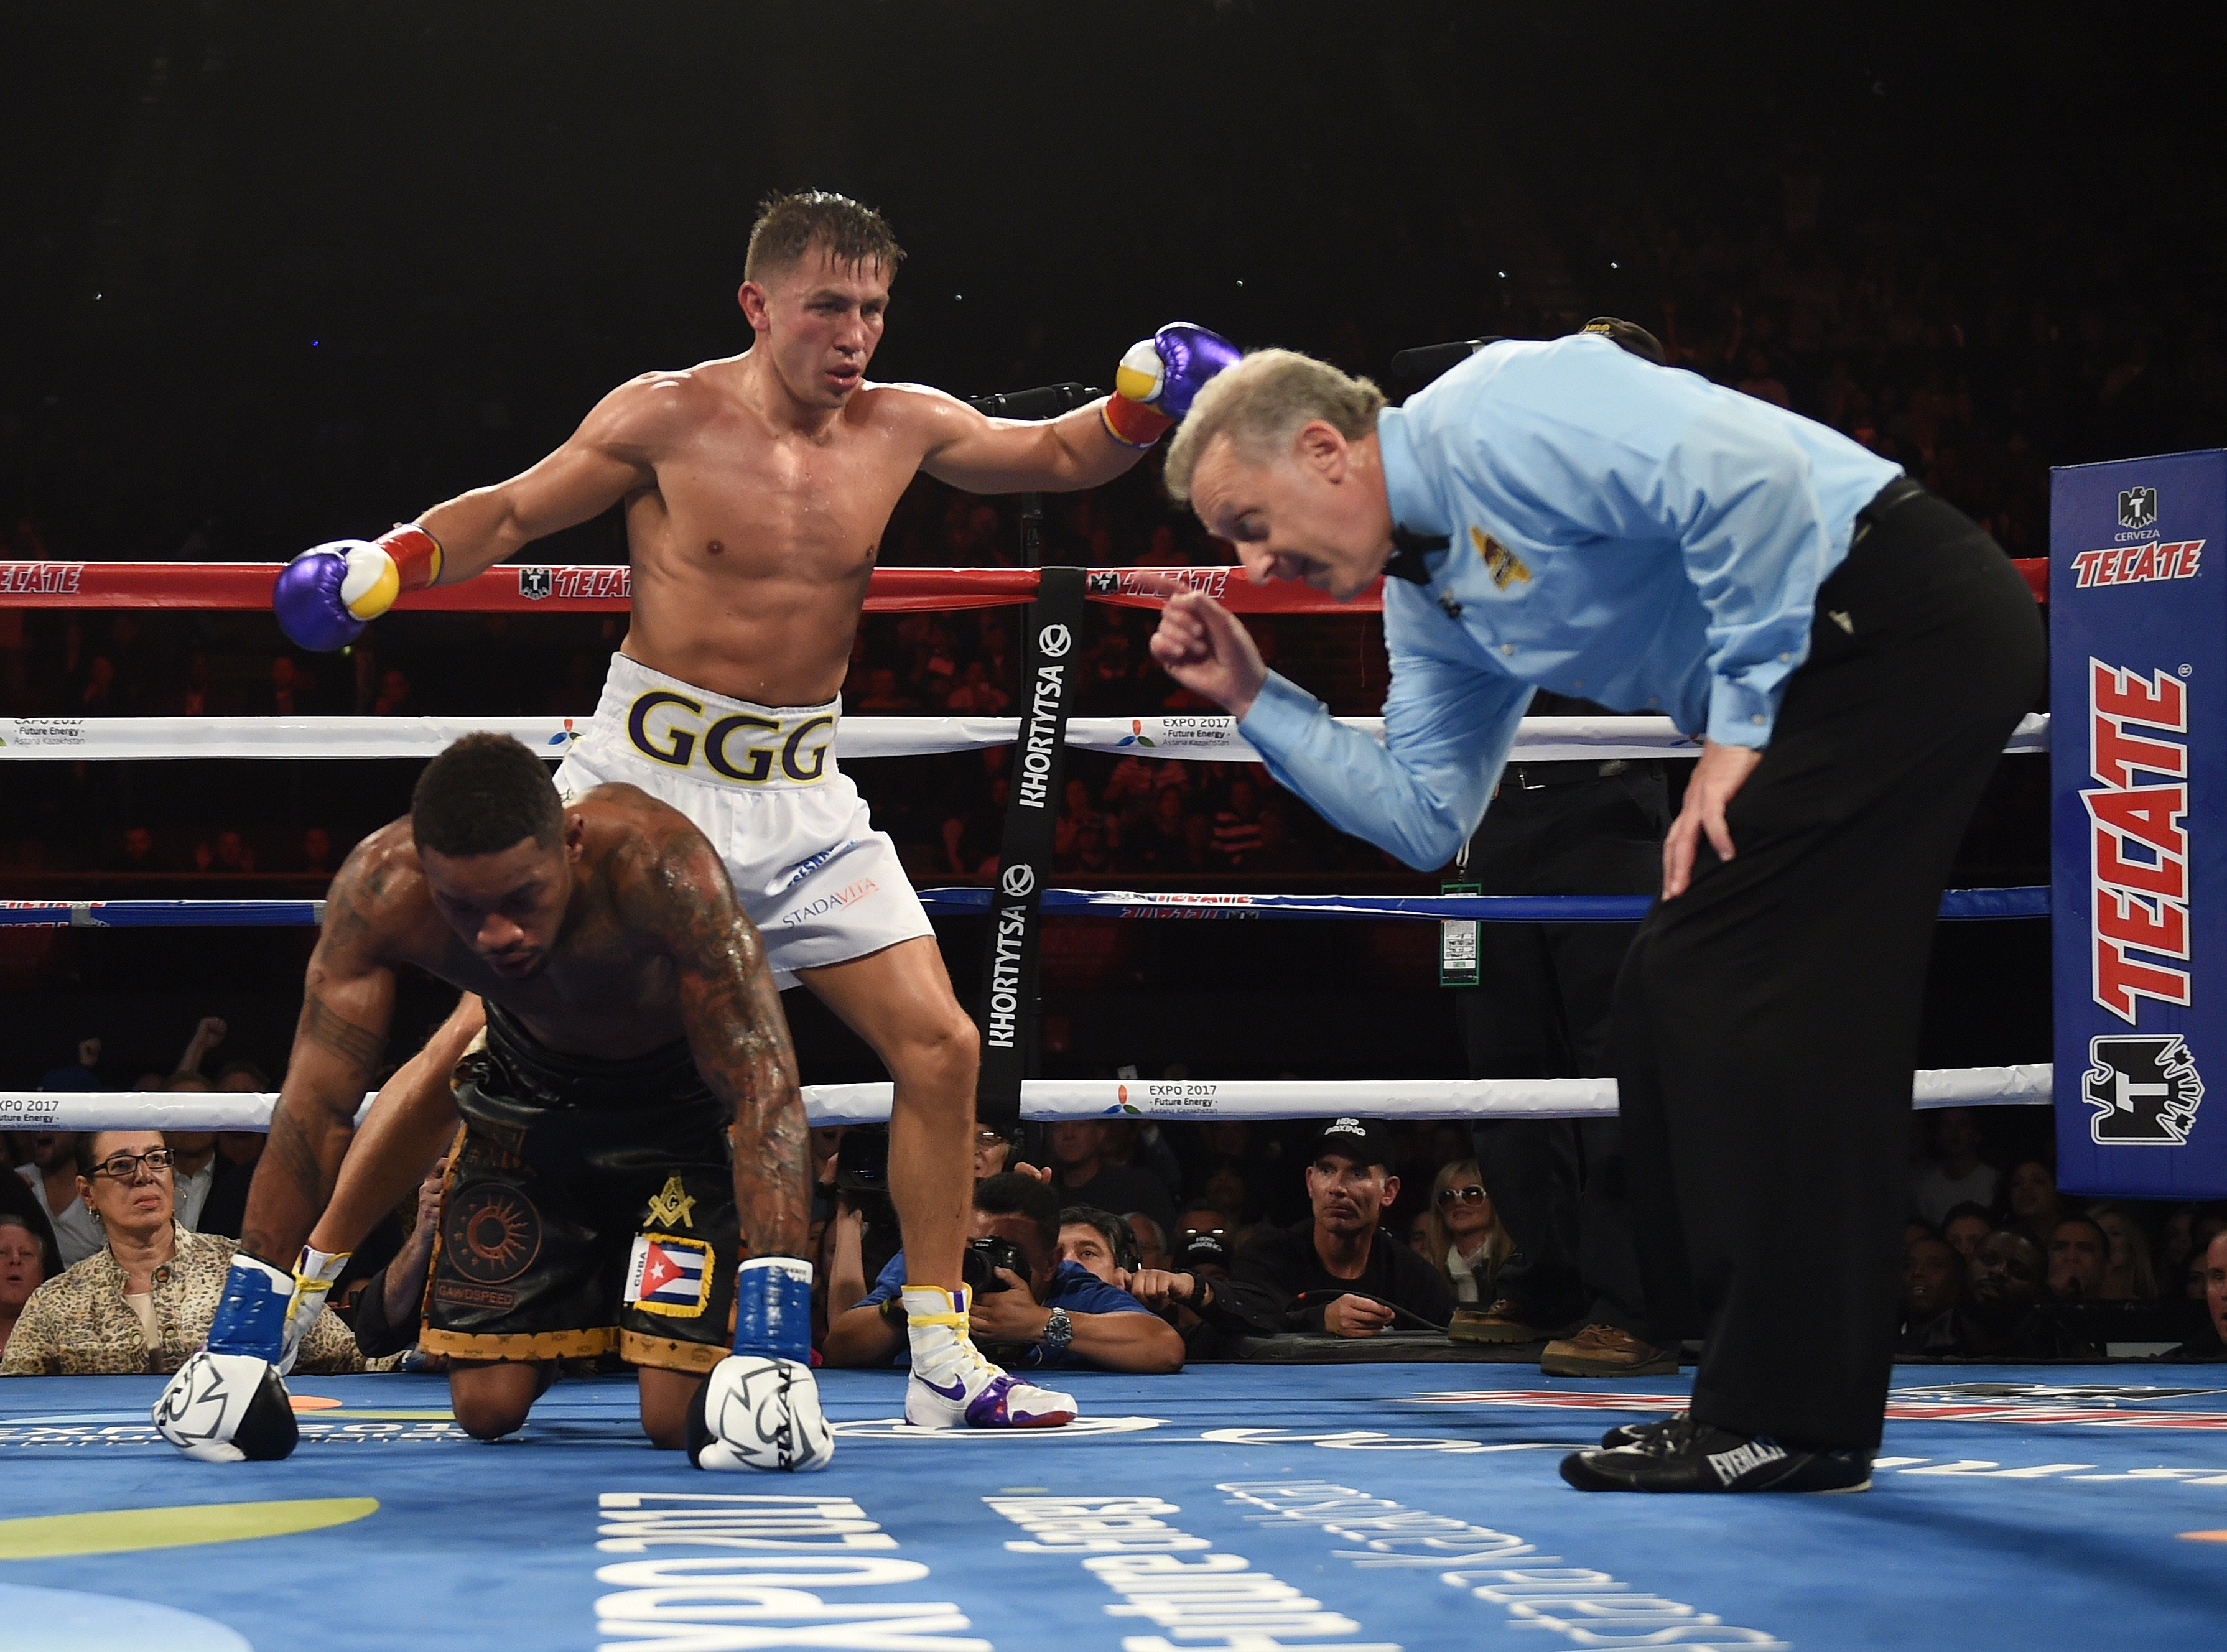 Gennady Golovkin knocks out Willie Monroe of the US in the sixth round during their Middleweight World Championship bout at the Forum Arena in Los Angeles, California on May 16, (Getty)